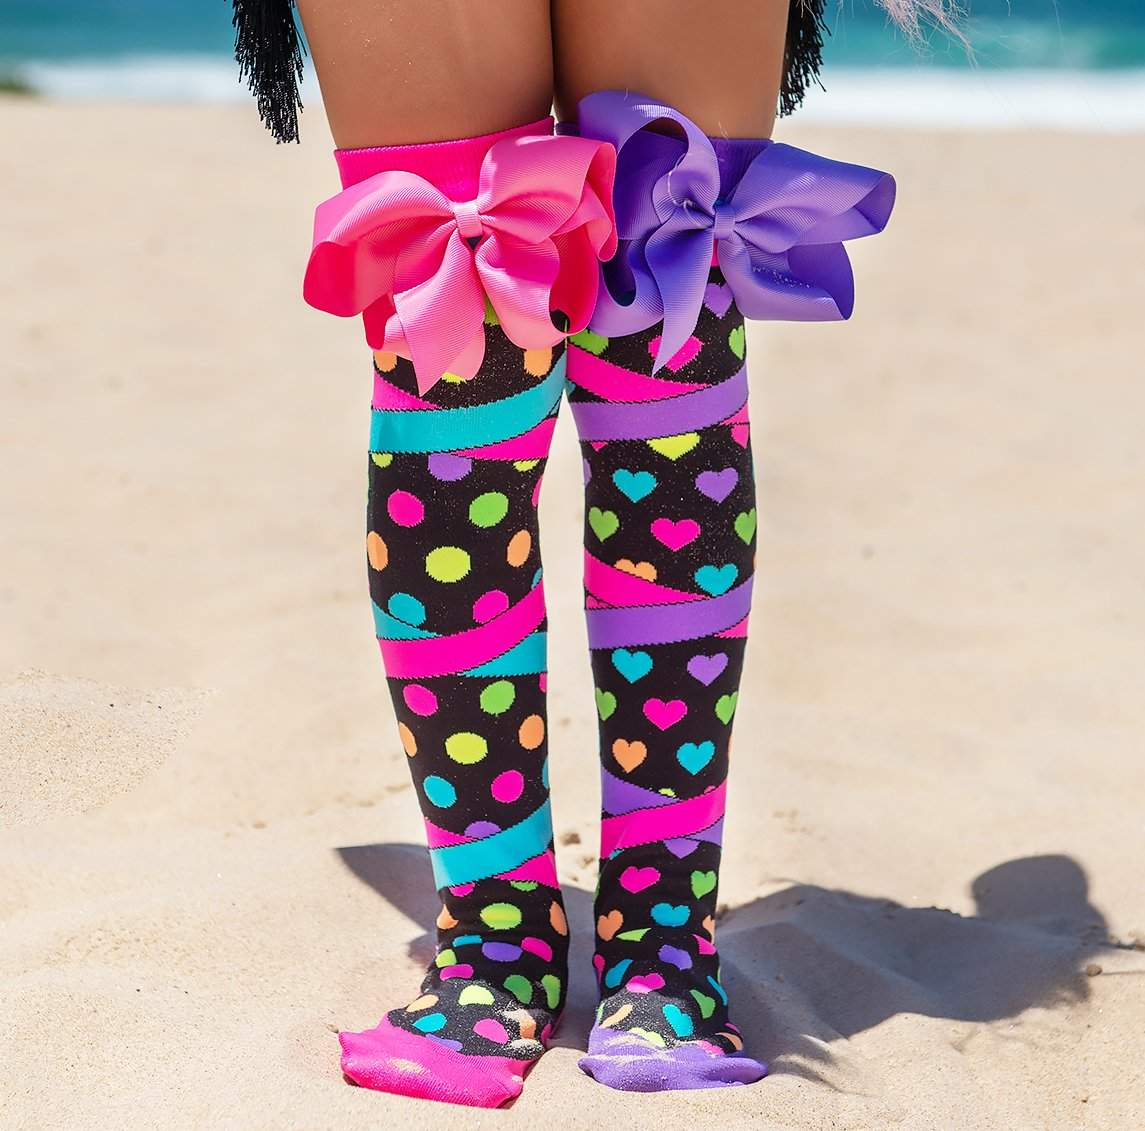 BOW-TIFUL SOCKS